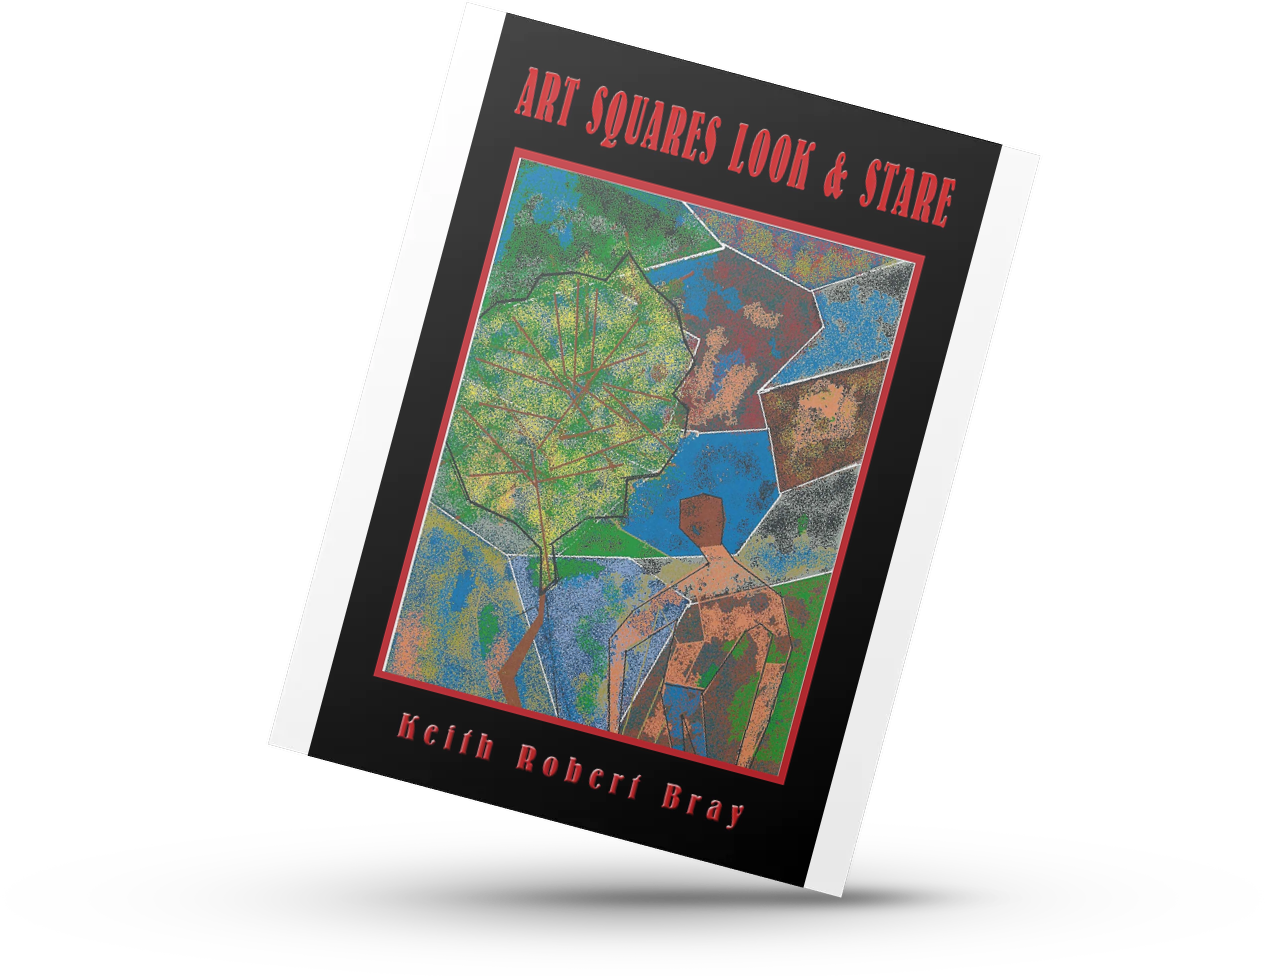 Art Squares Look & Stare poetry book